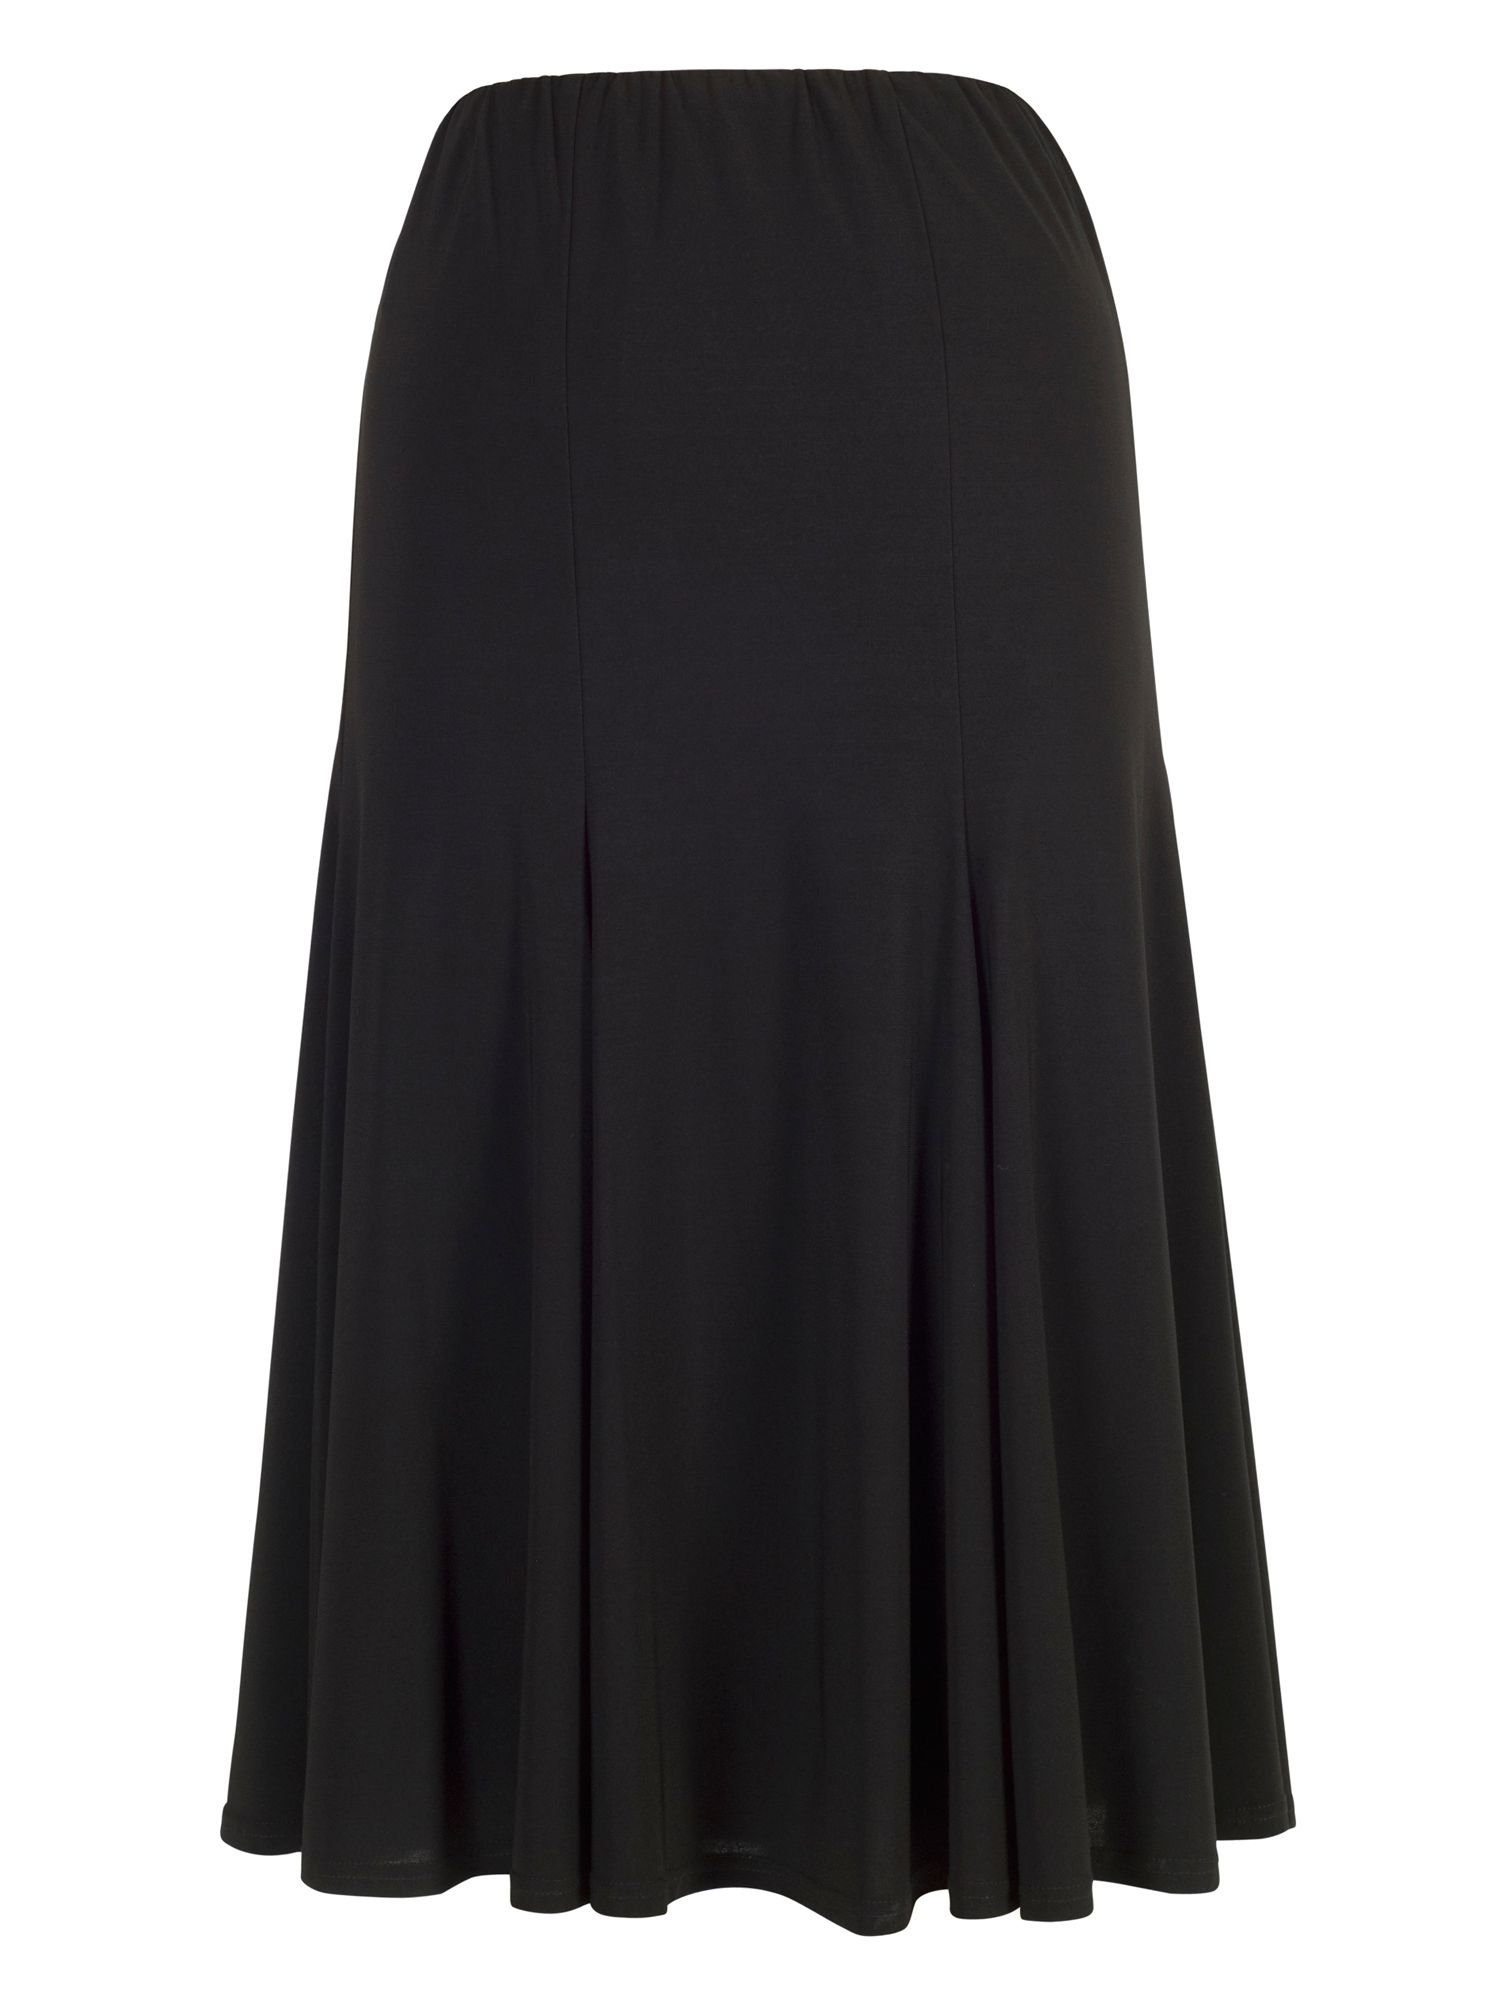 Chesca Jersey Skirt, Black